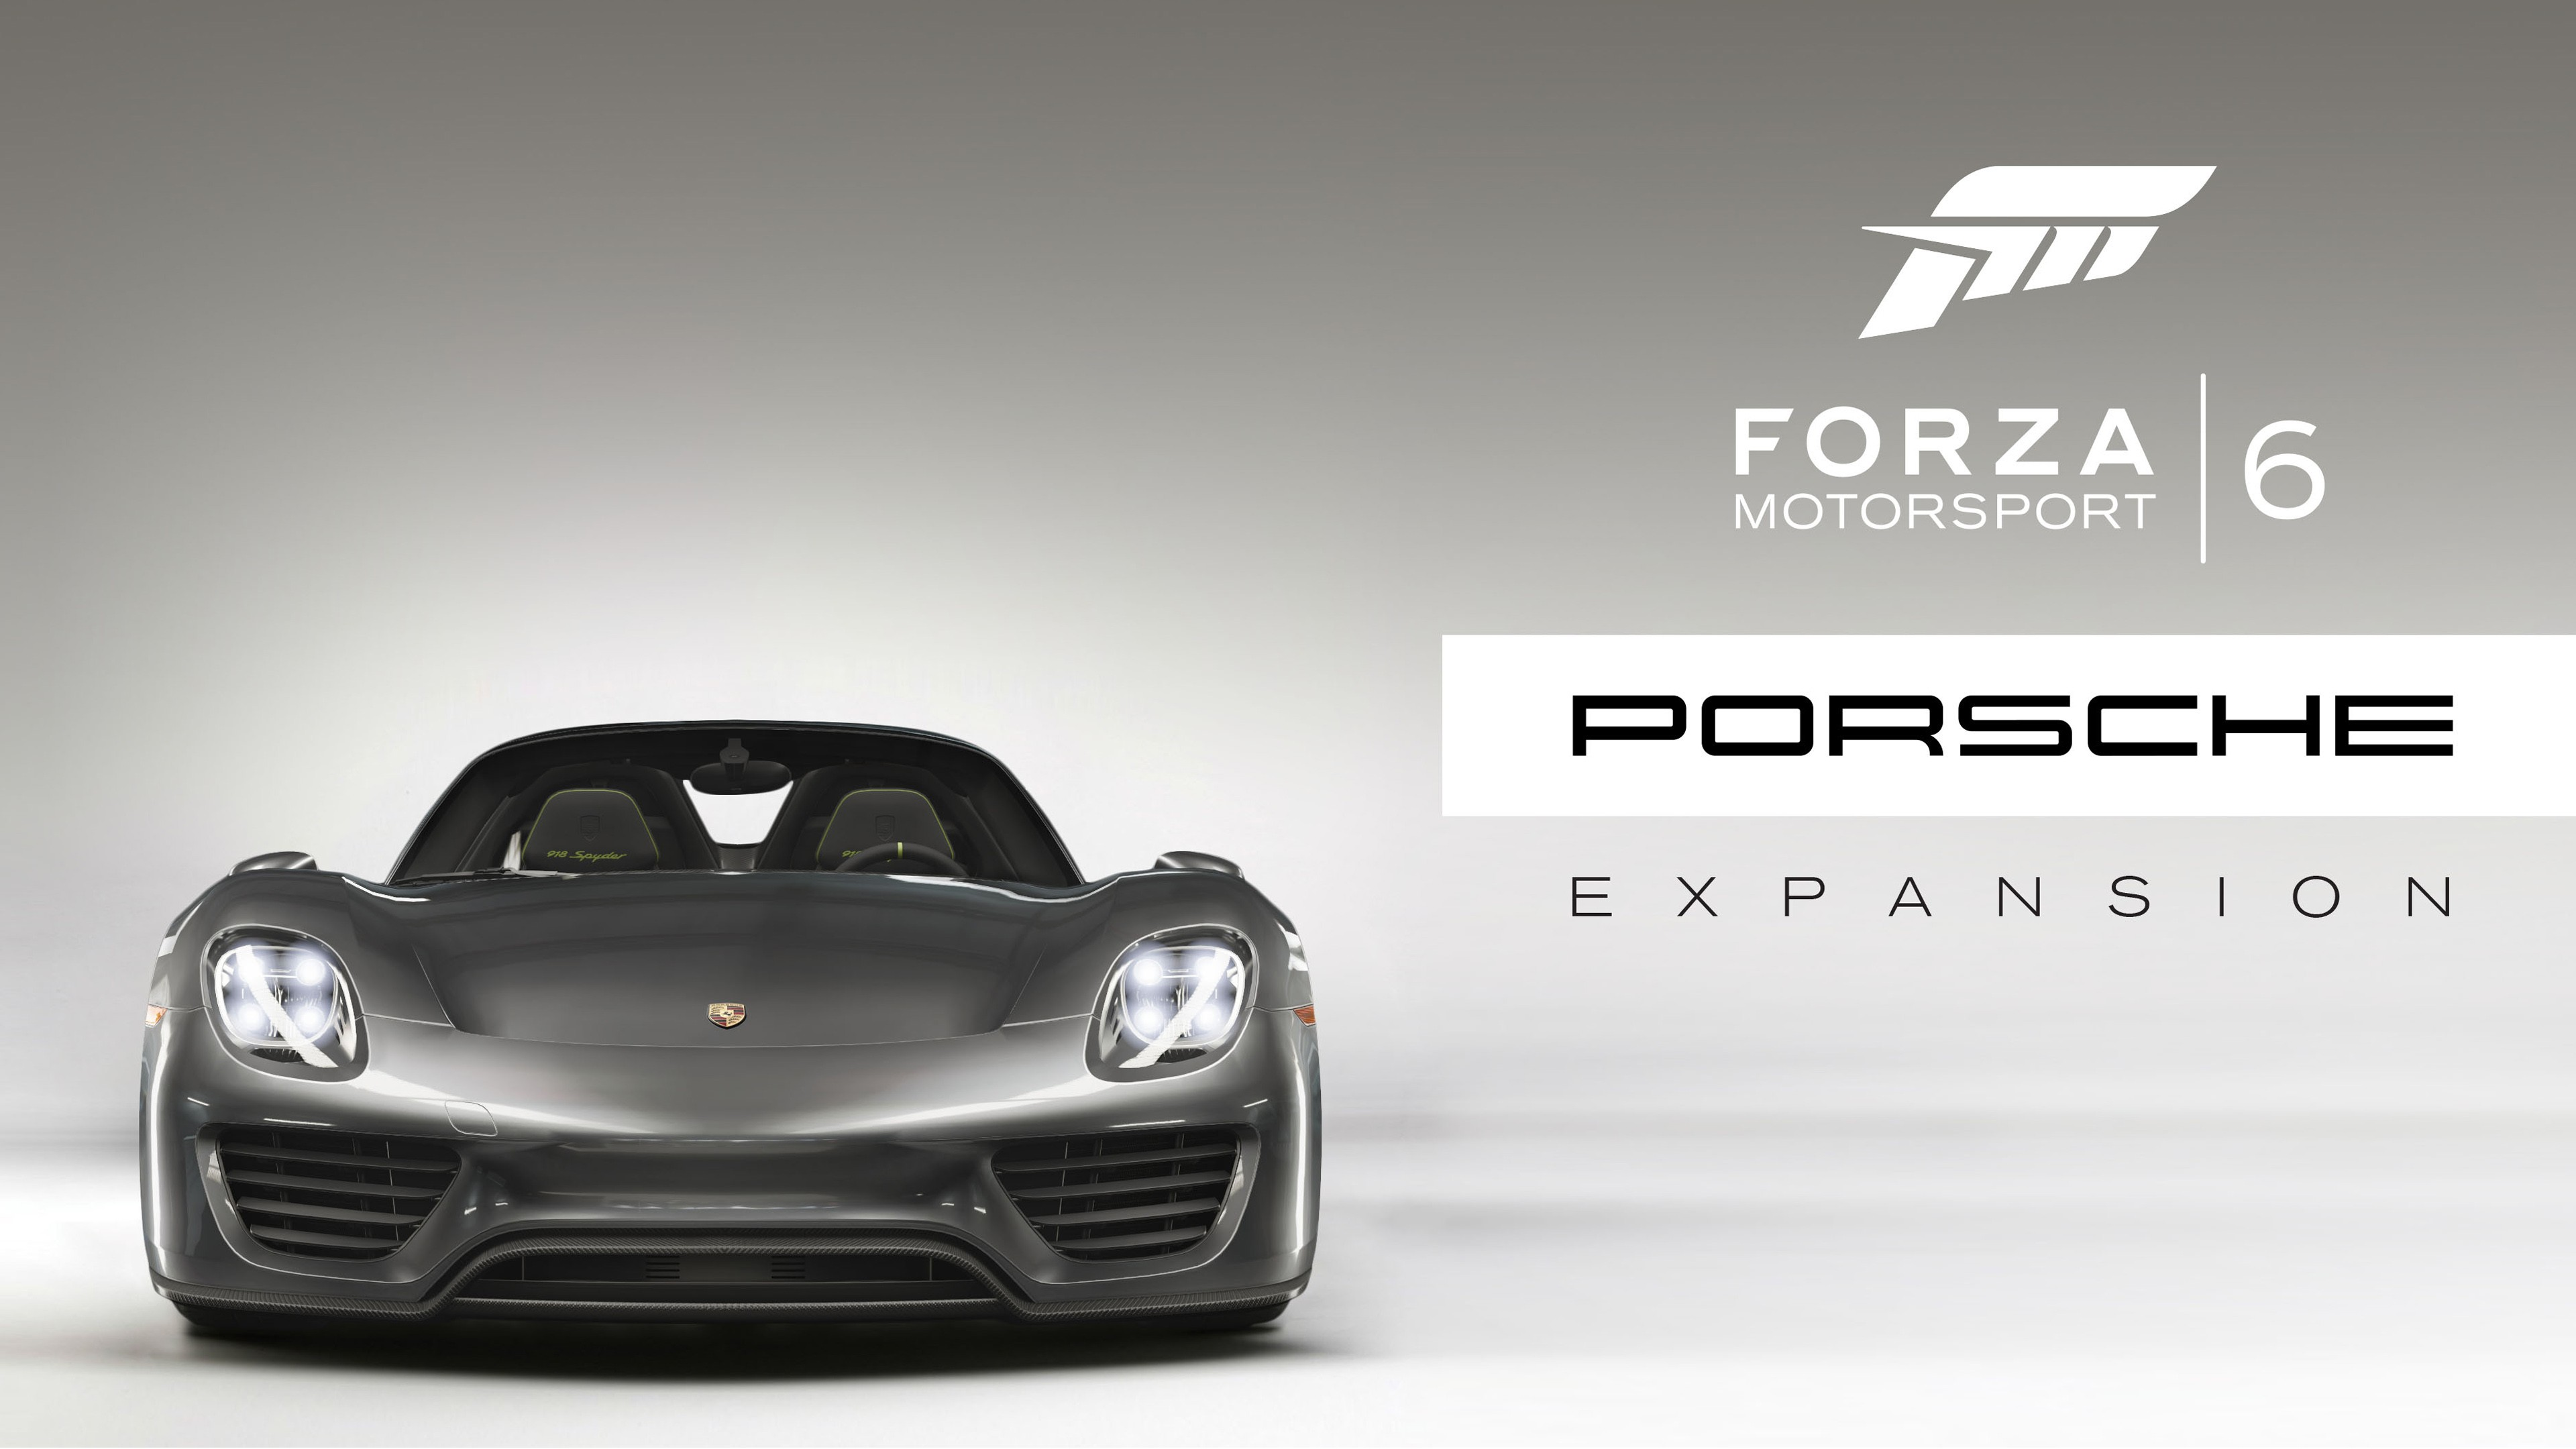 Android 3d Wallpaper Effect Forza Motorsport 6 Porsche Expansion Wallpapers Hd